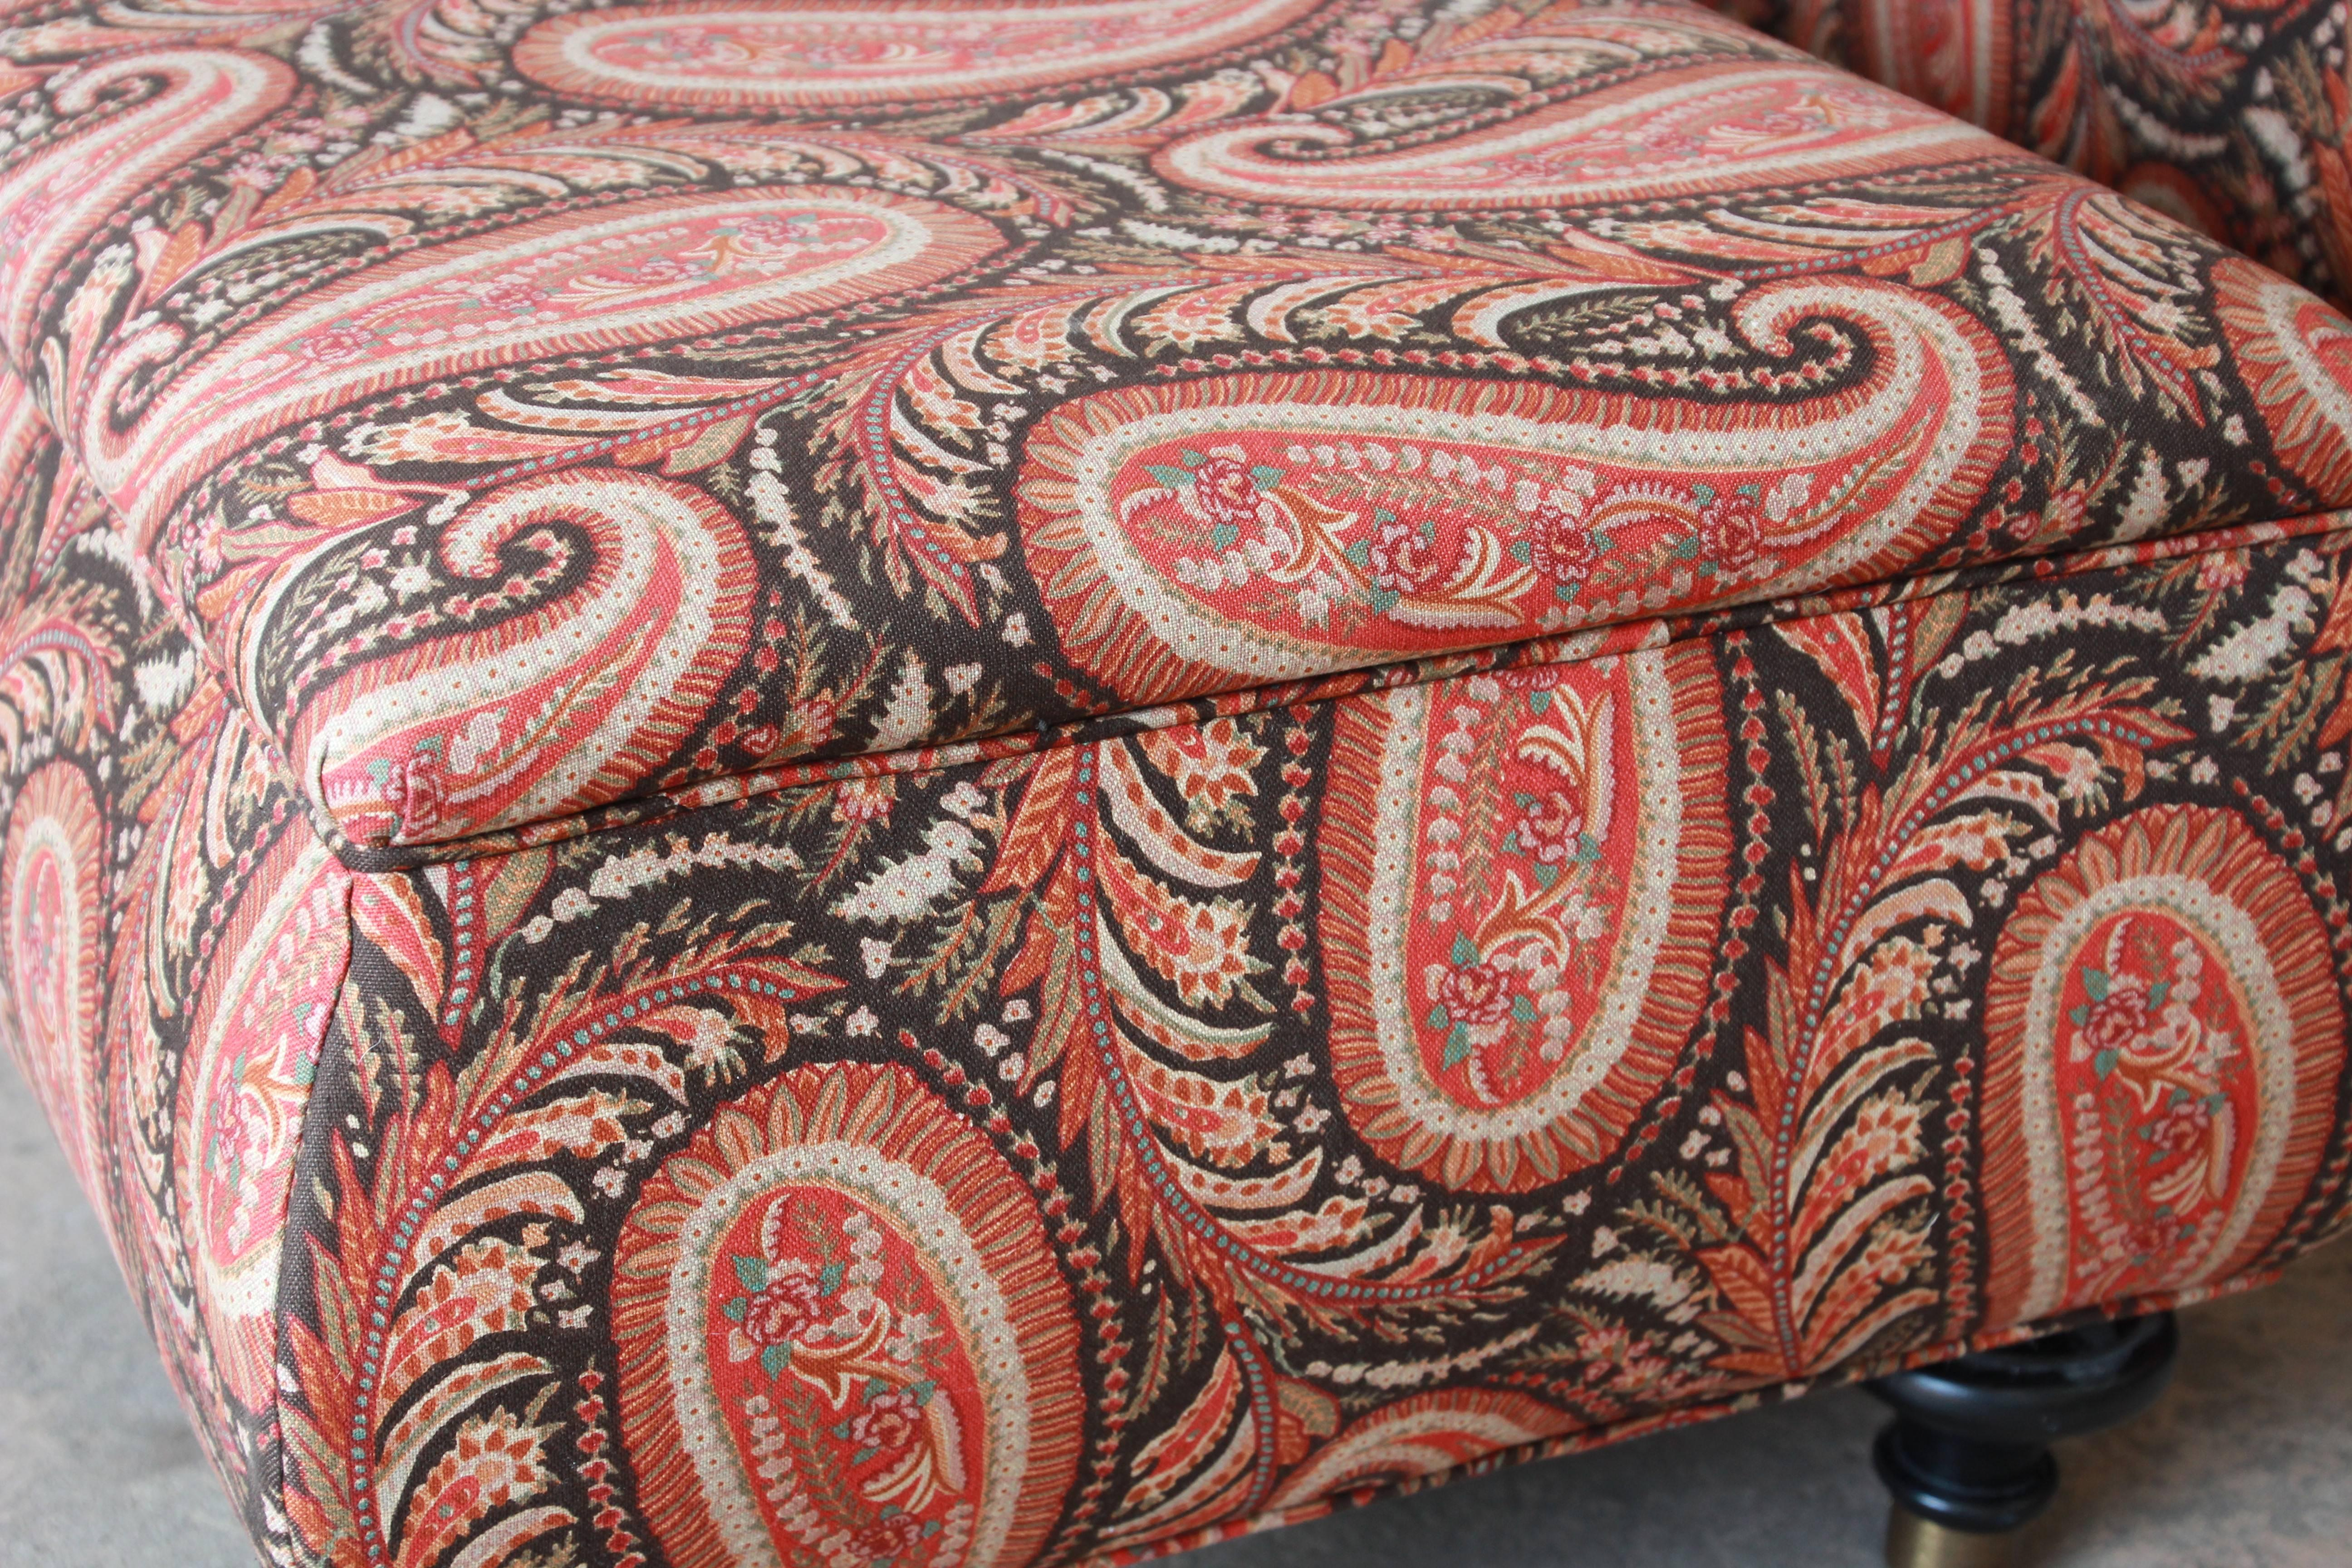 Wondrous Kravet Lounge Chair And Ottoman In Paisley Upholstery At 1Stdibs Creativecarmelina Interior Chair Design Creativecarmelinacom